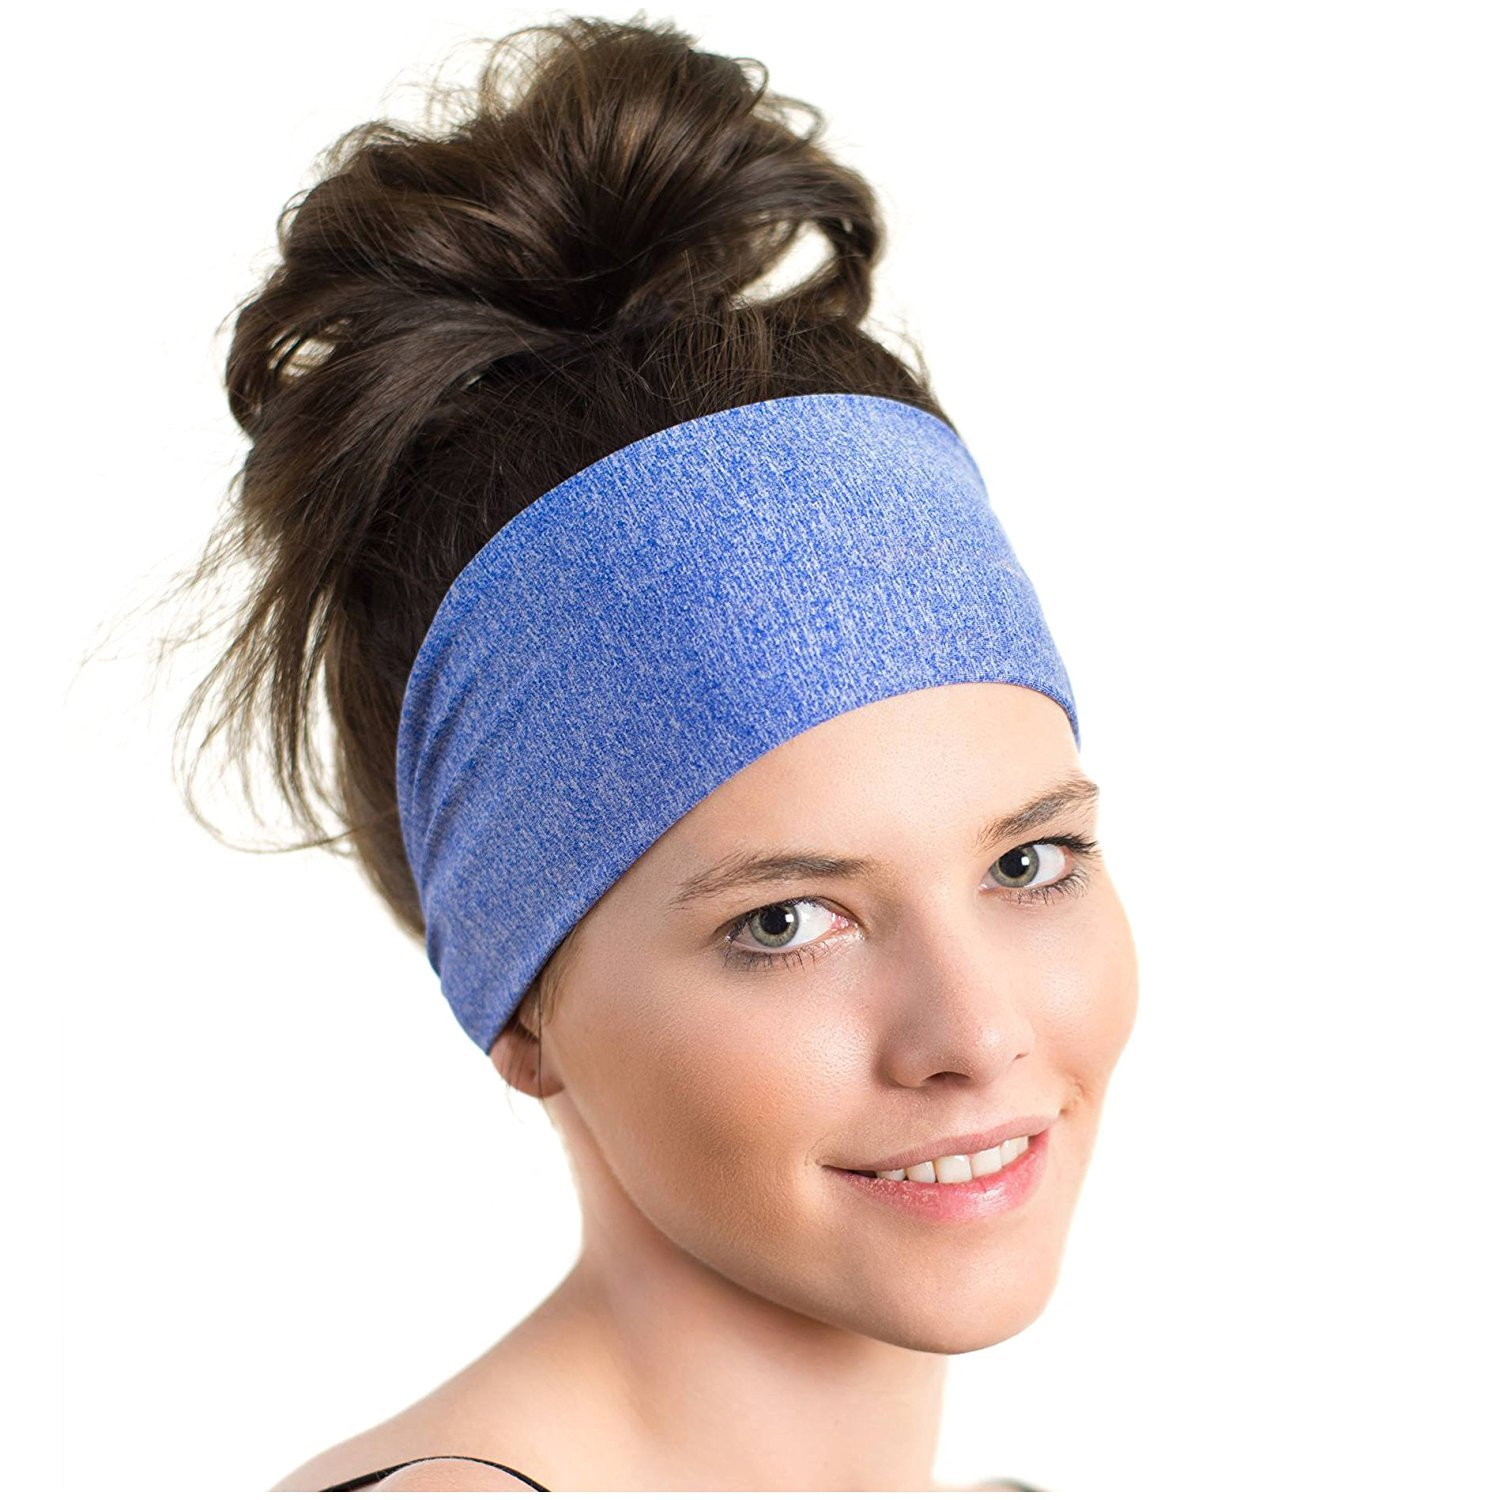 Moisture Wicking Headband